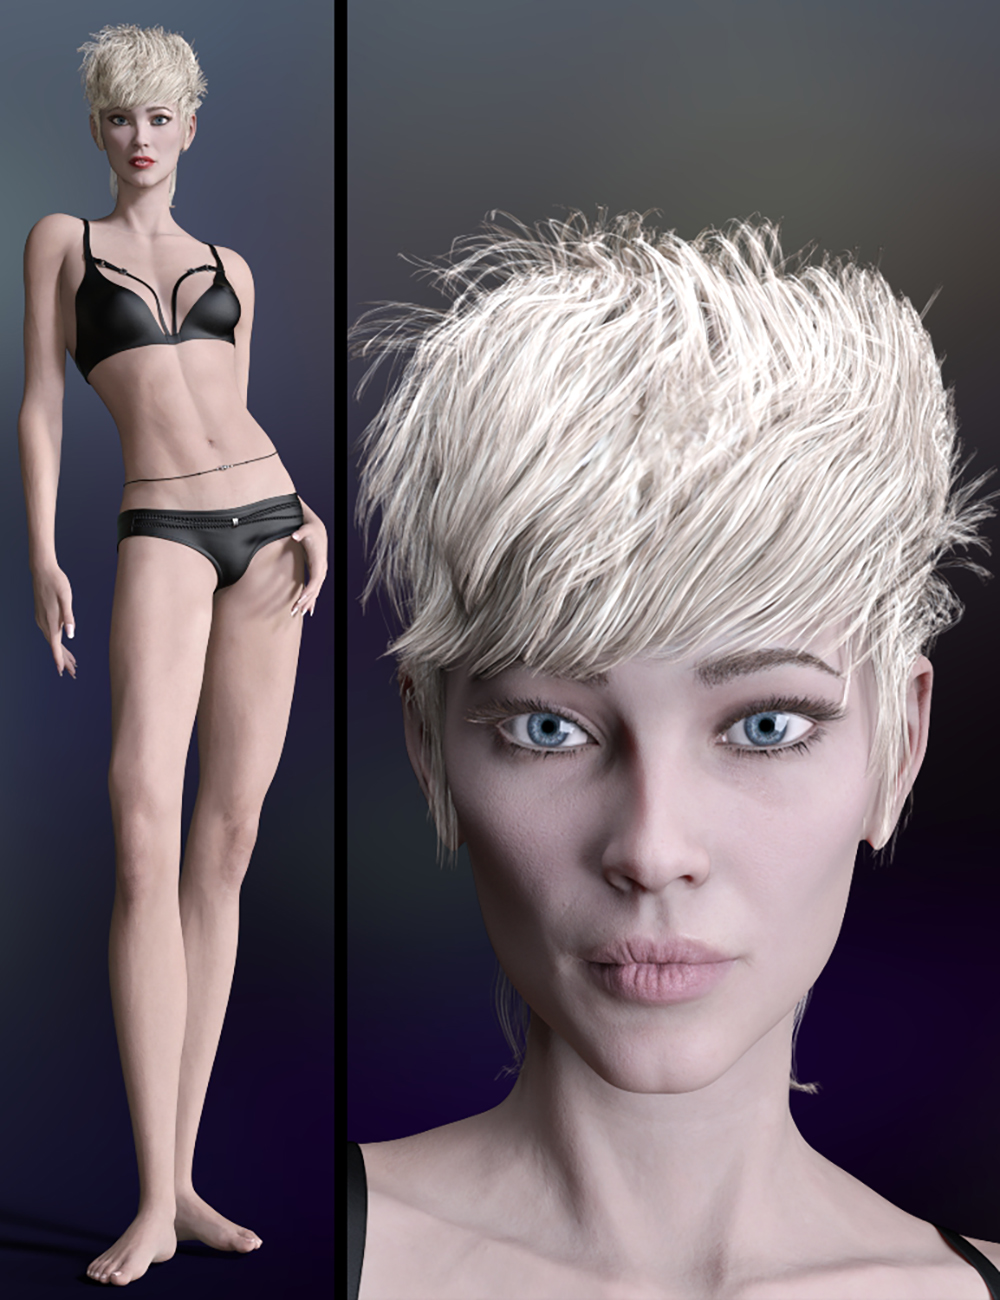 The Fashion Model HD for Genesis 8.1 Female by: 3DStyle, 3D Models by Daz 3D